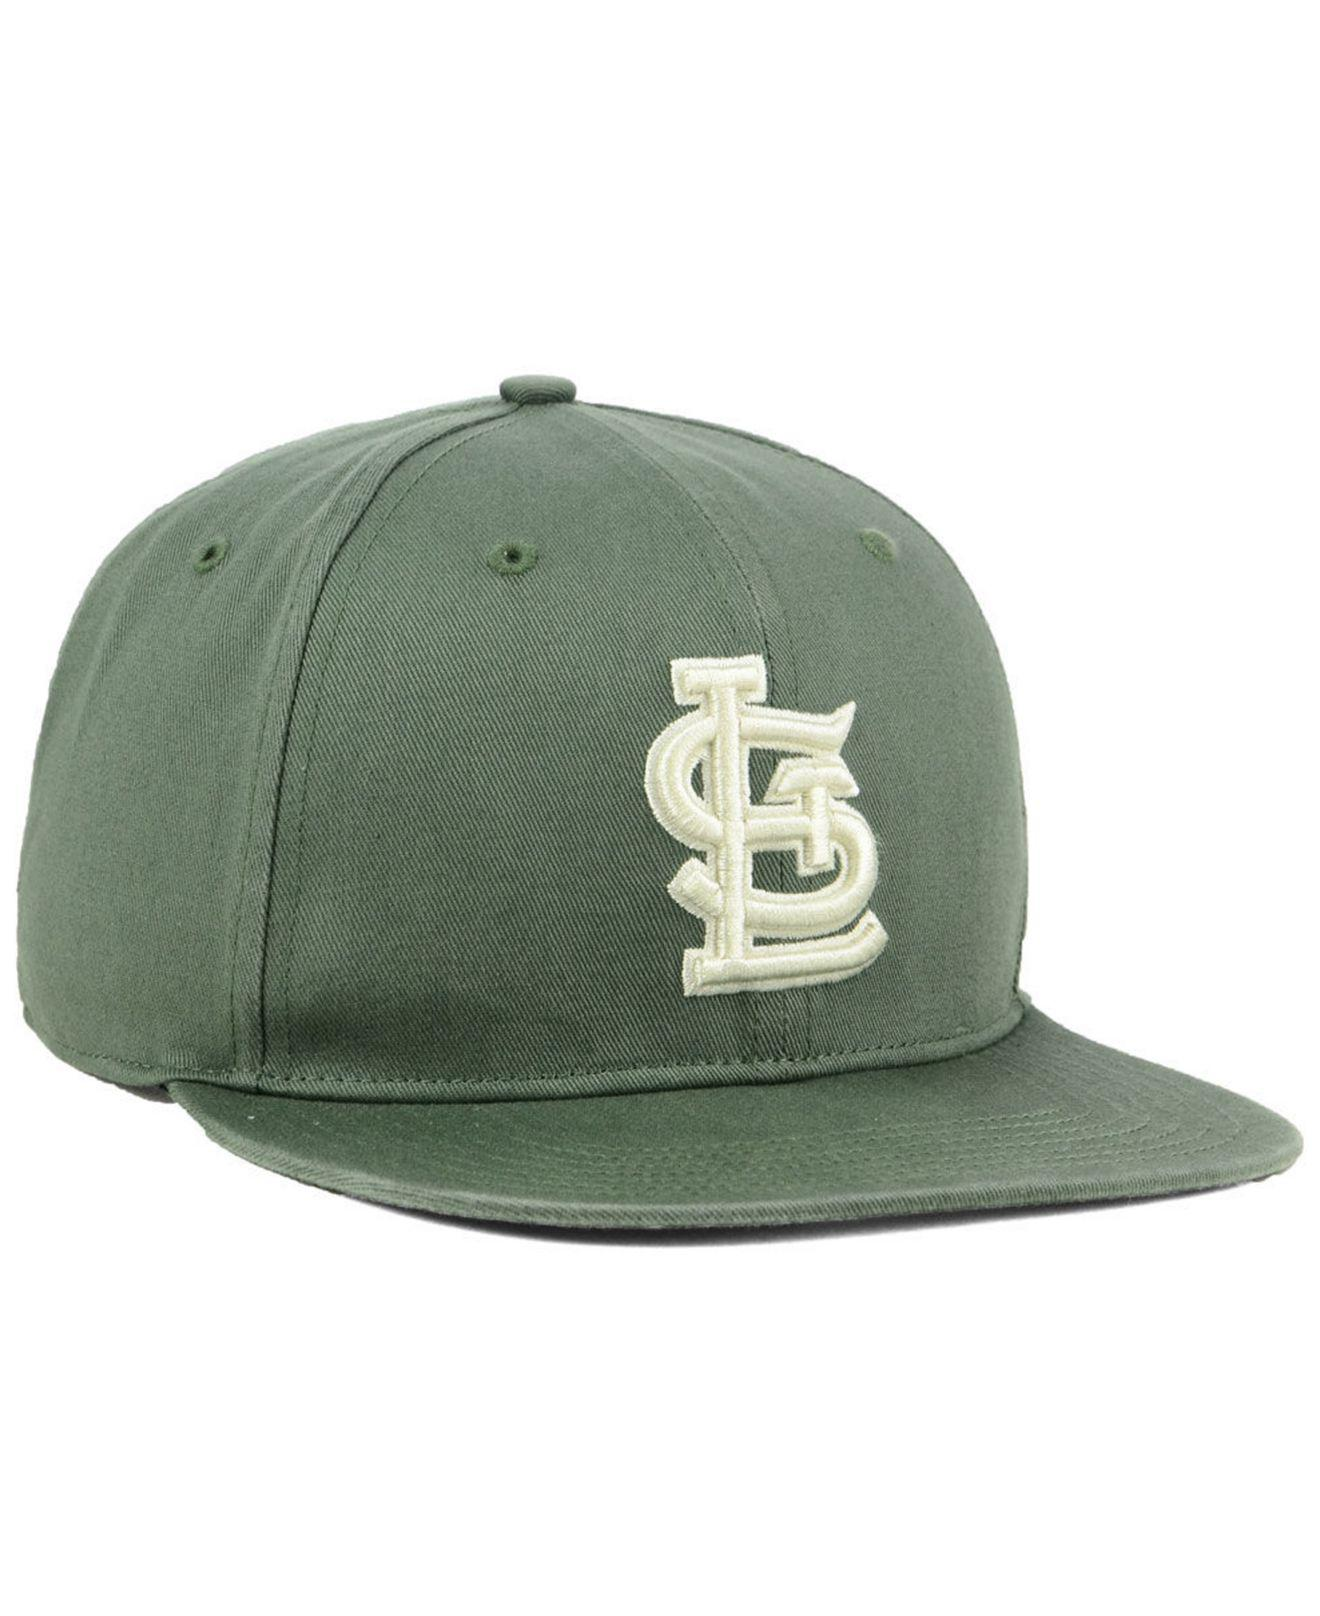 reputable site 5f028 7fd49 Lyst - 47 Brand St. Louis Cardinals Moss Snapback Cap in Green for Men